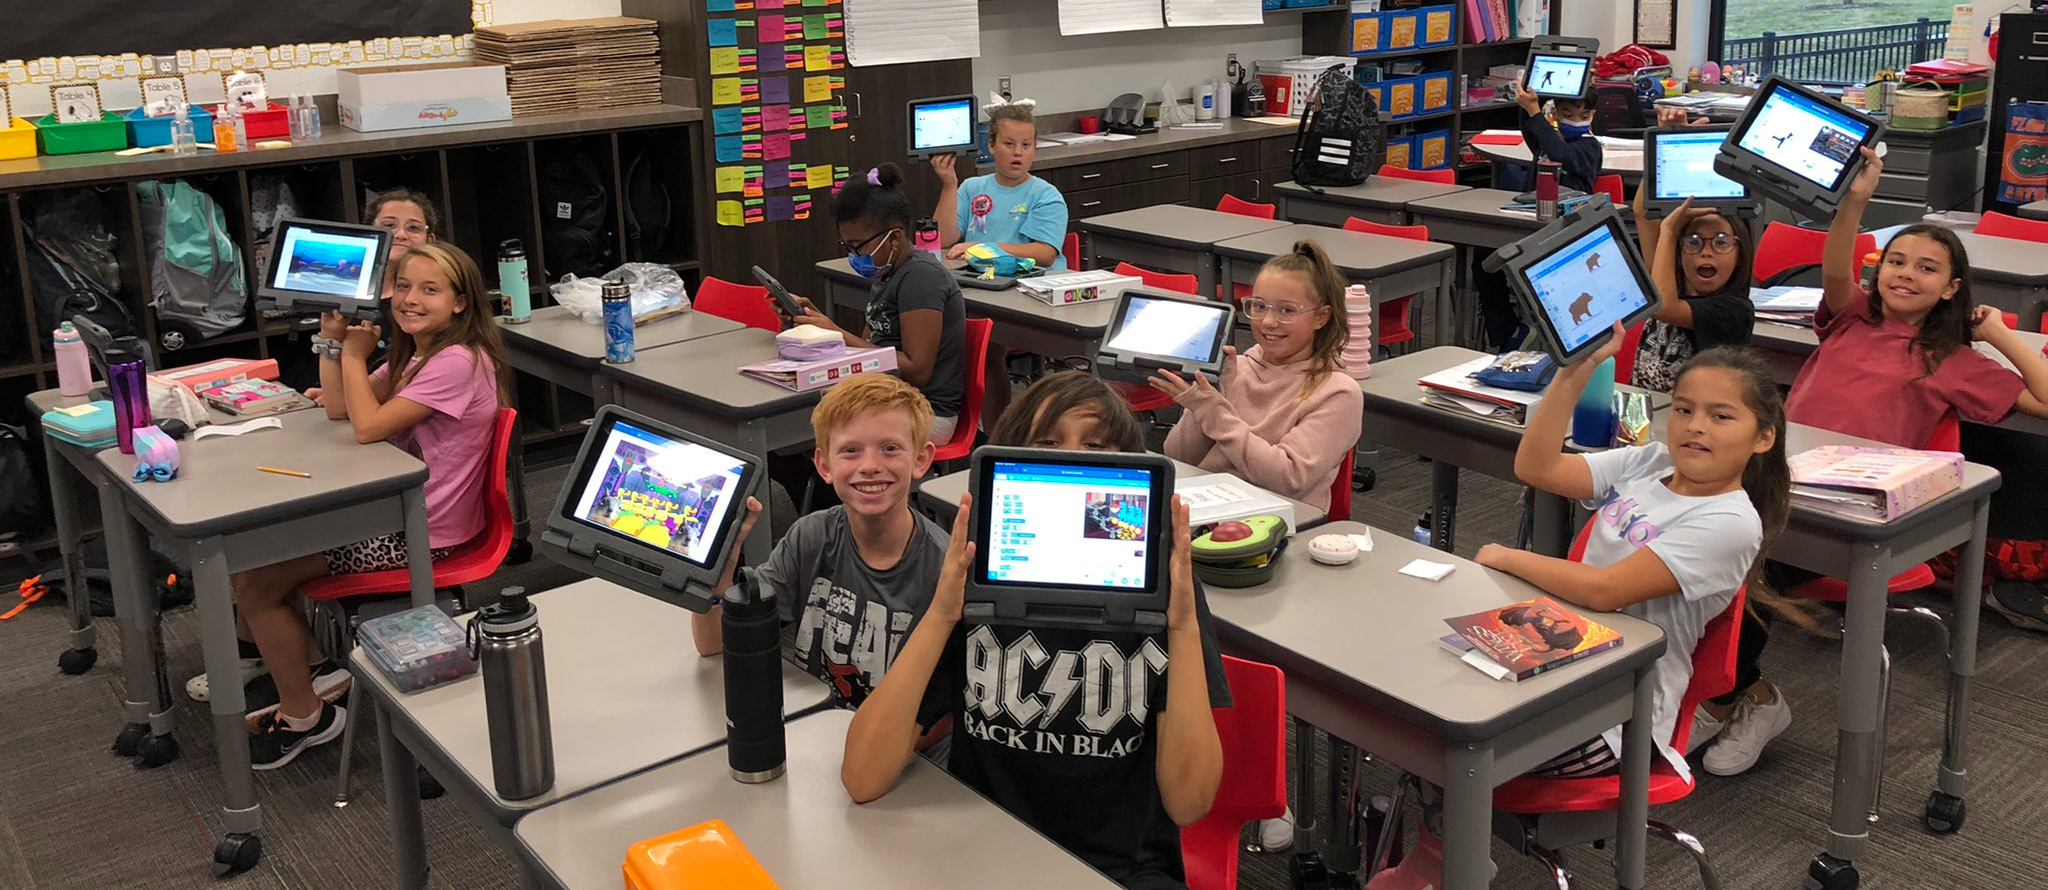 Students hold up iPads showing the games they programmed